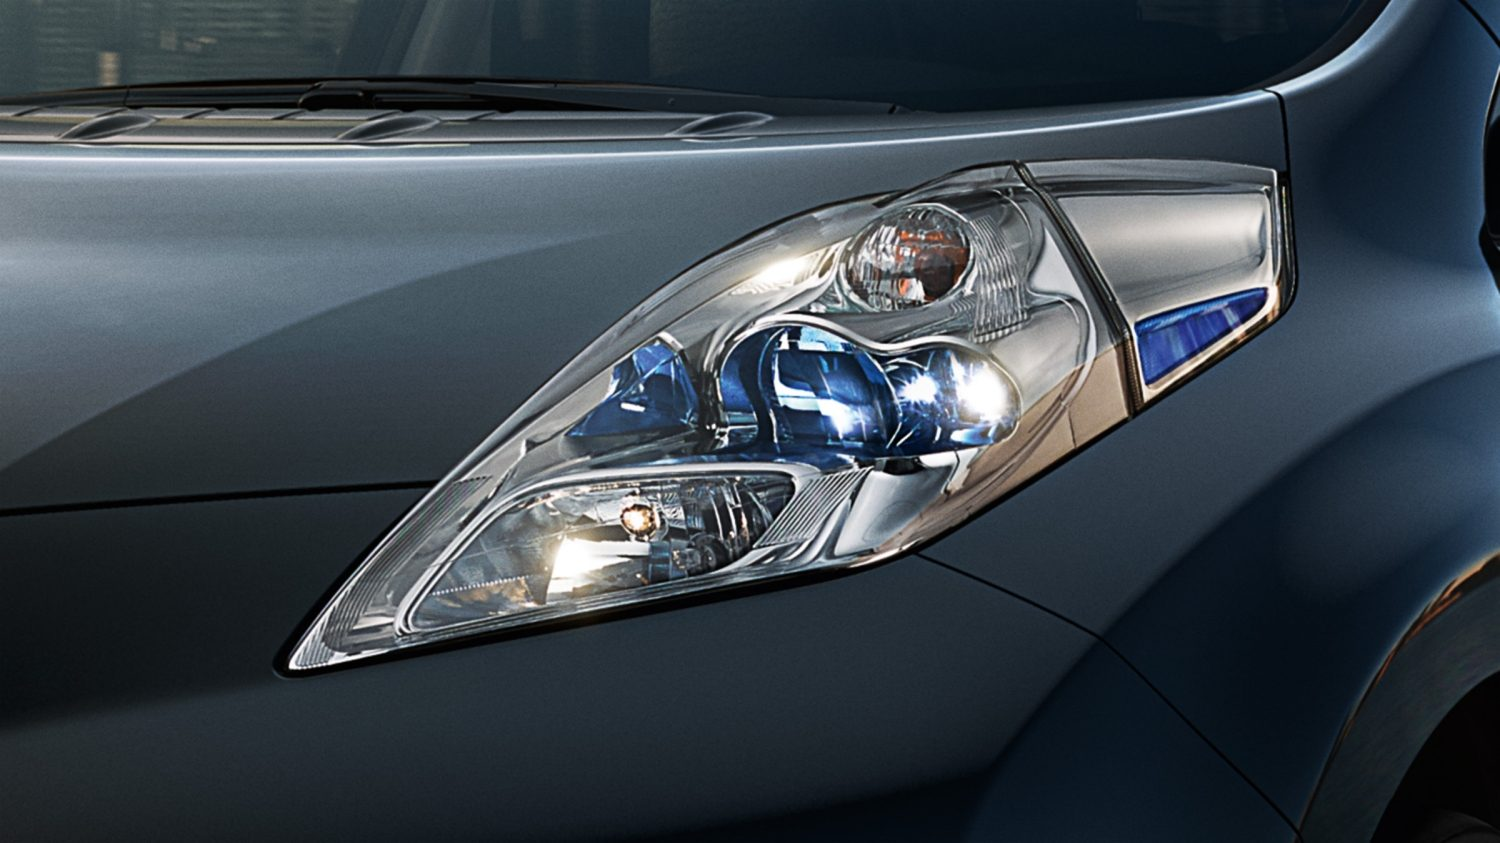 Nissan LEAF Black Edition - Signature LED headlights